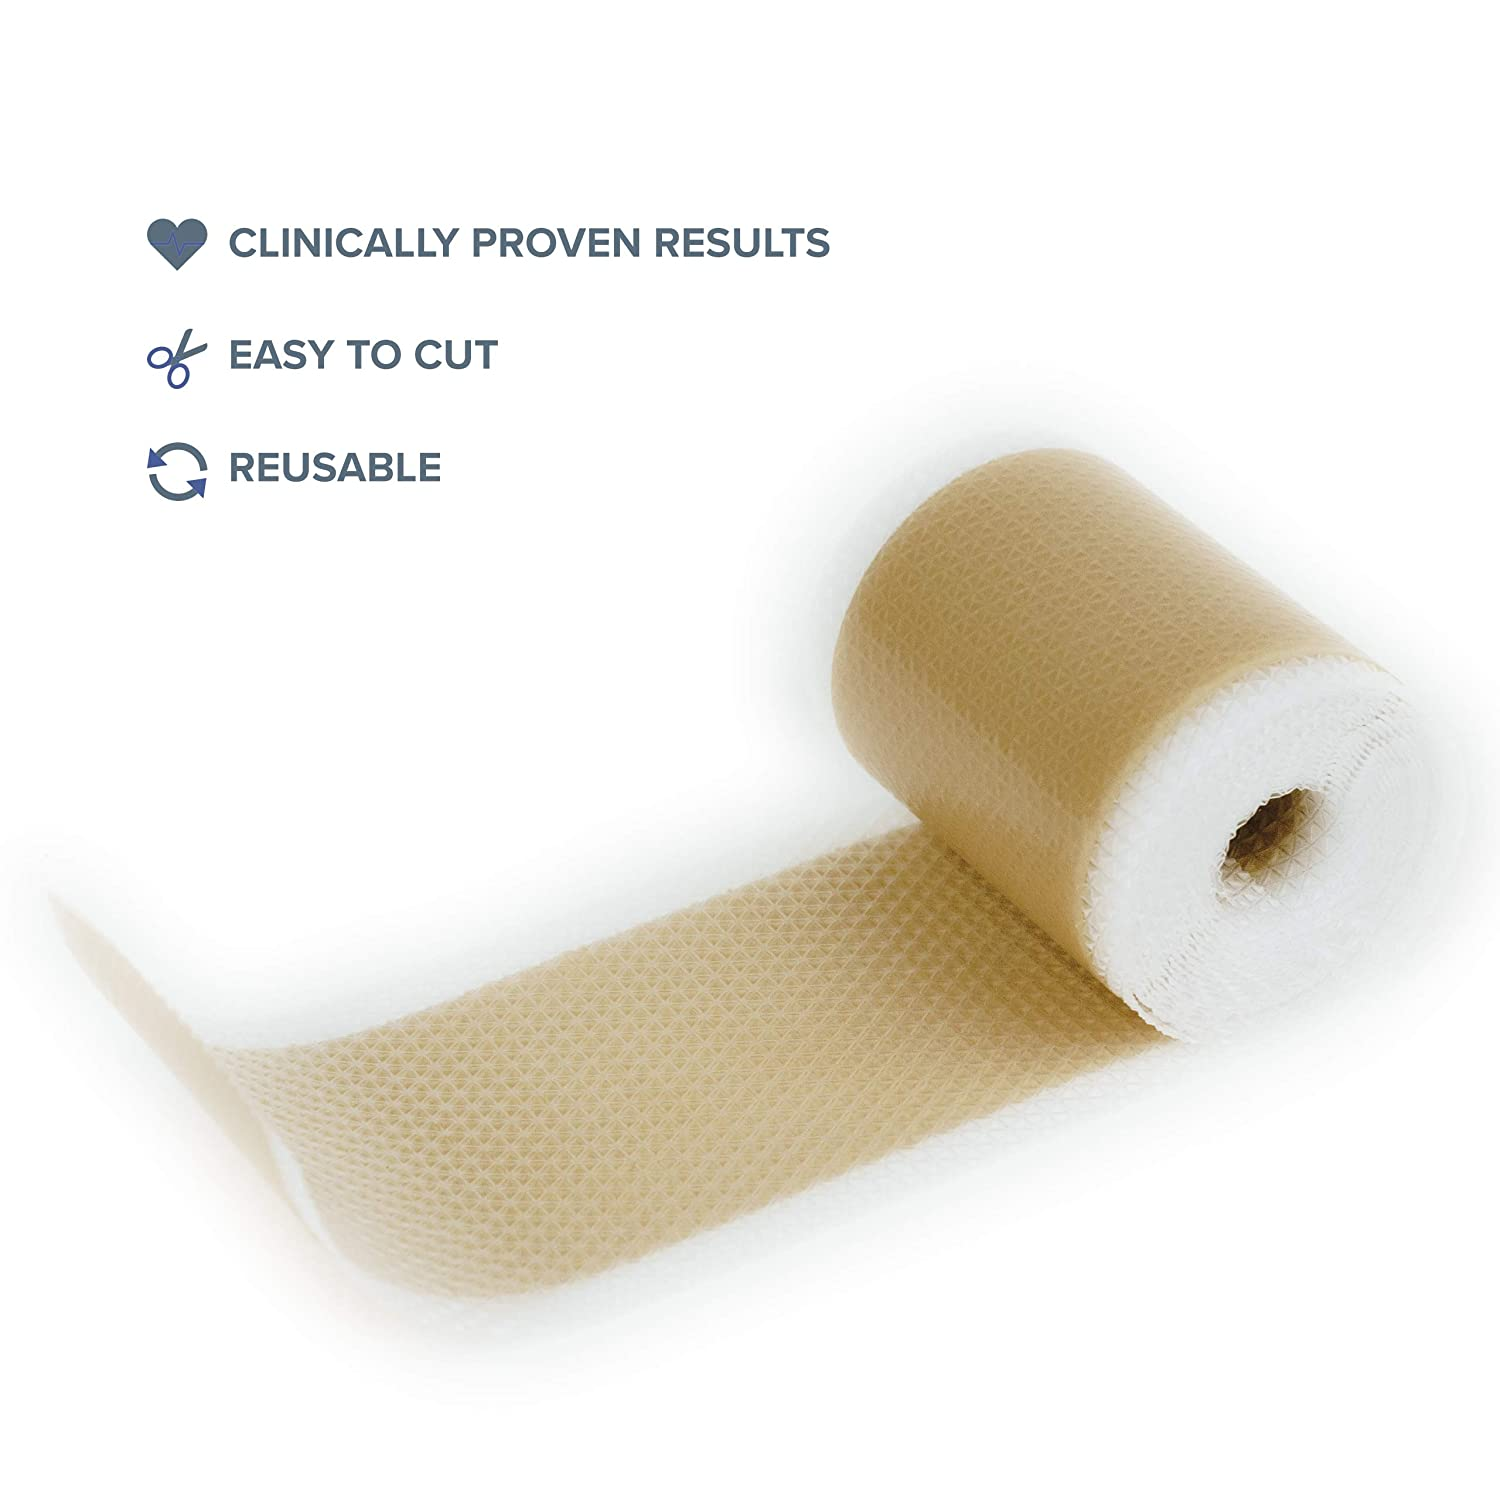 """AWD Medical Soft Silicone Tape for Scars Removal – 1.6"""" x 120"""" with Silicone Gel Sheeting - Painless Easy Removal Hypoallergenic for Surgery 